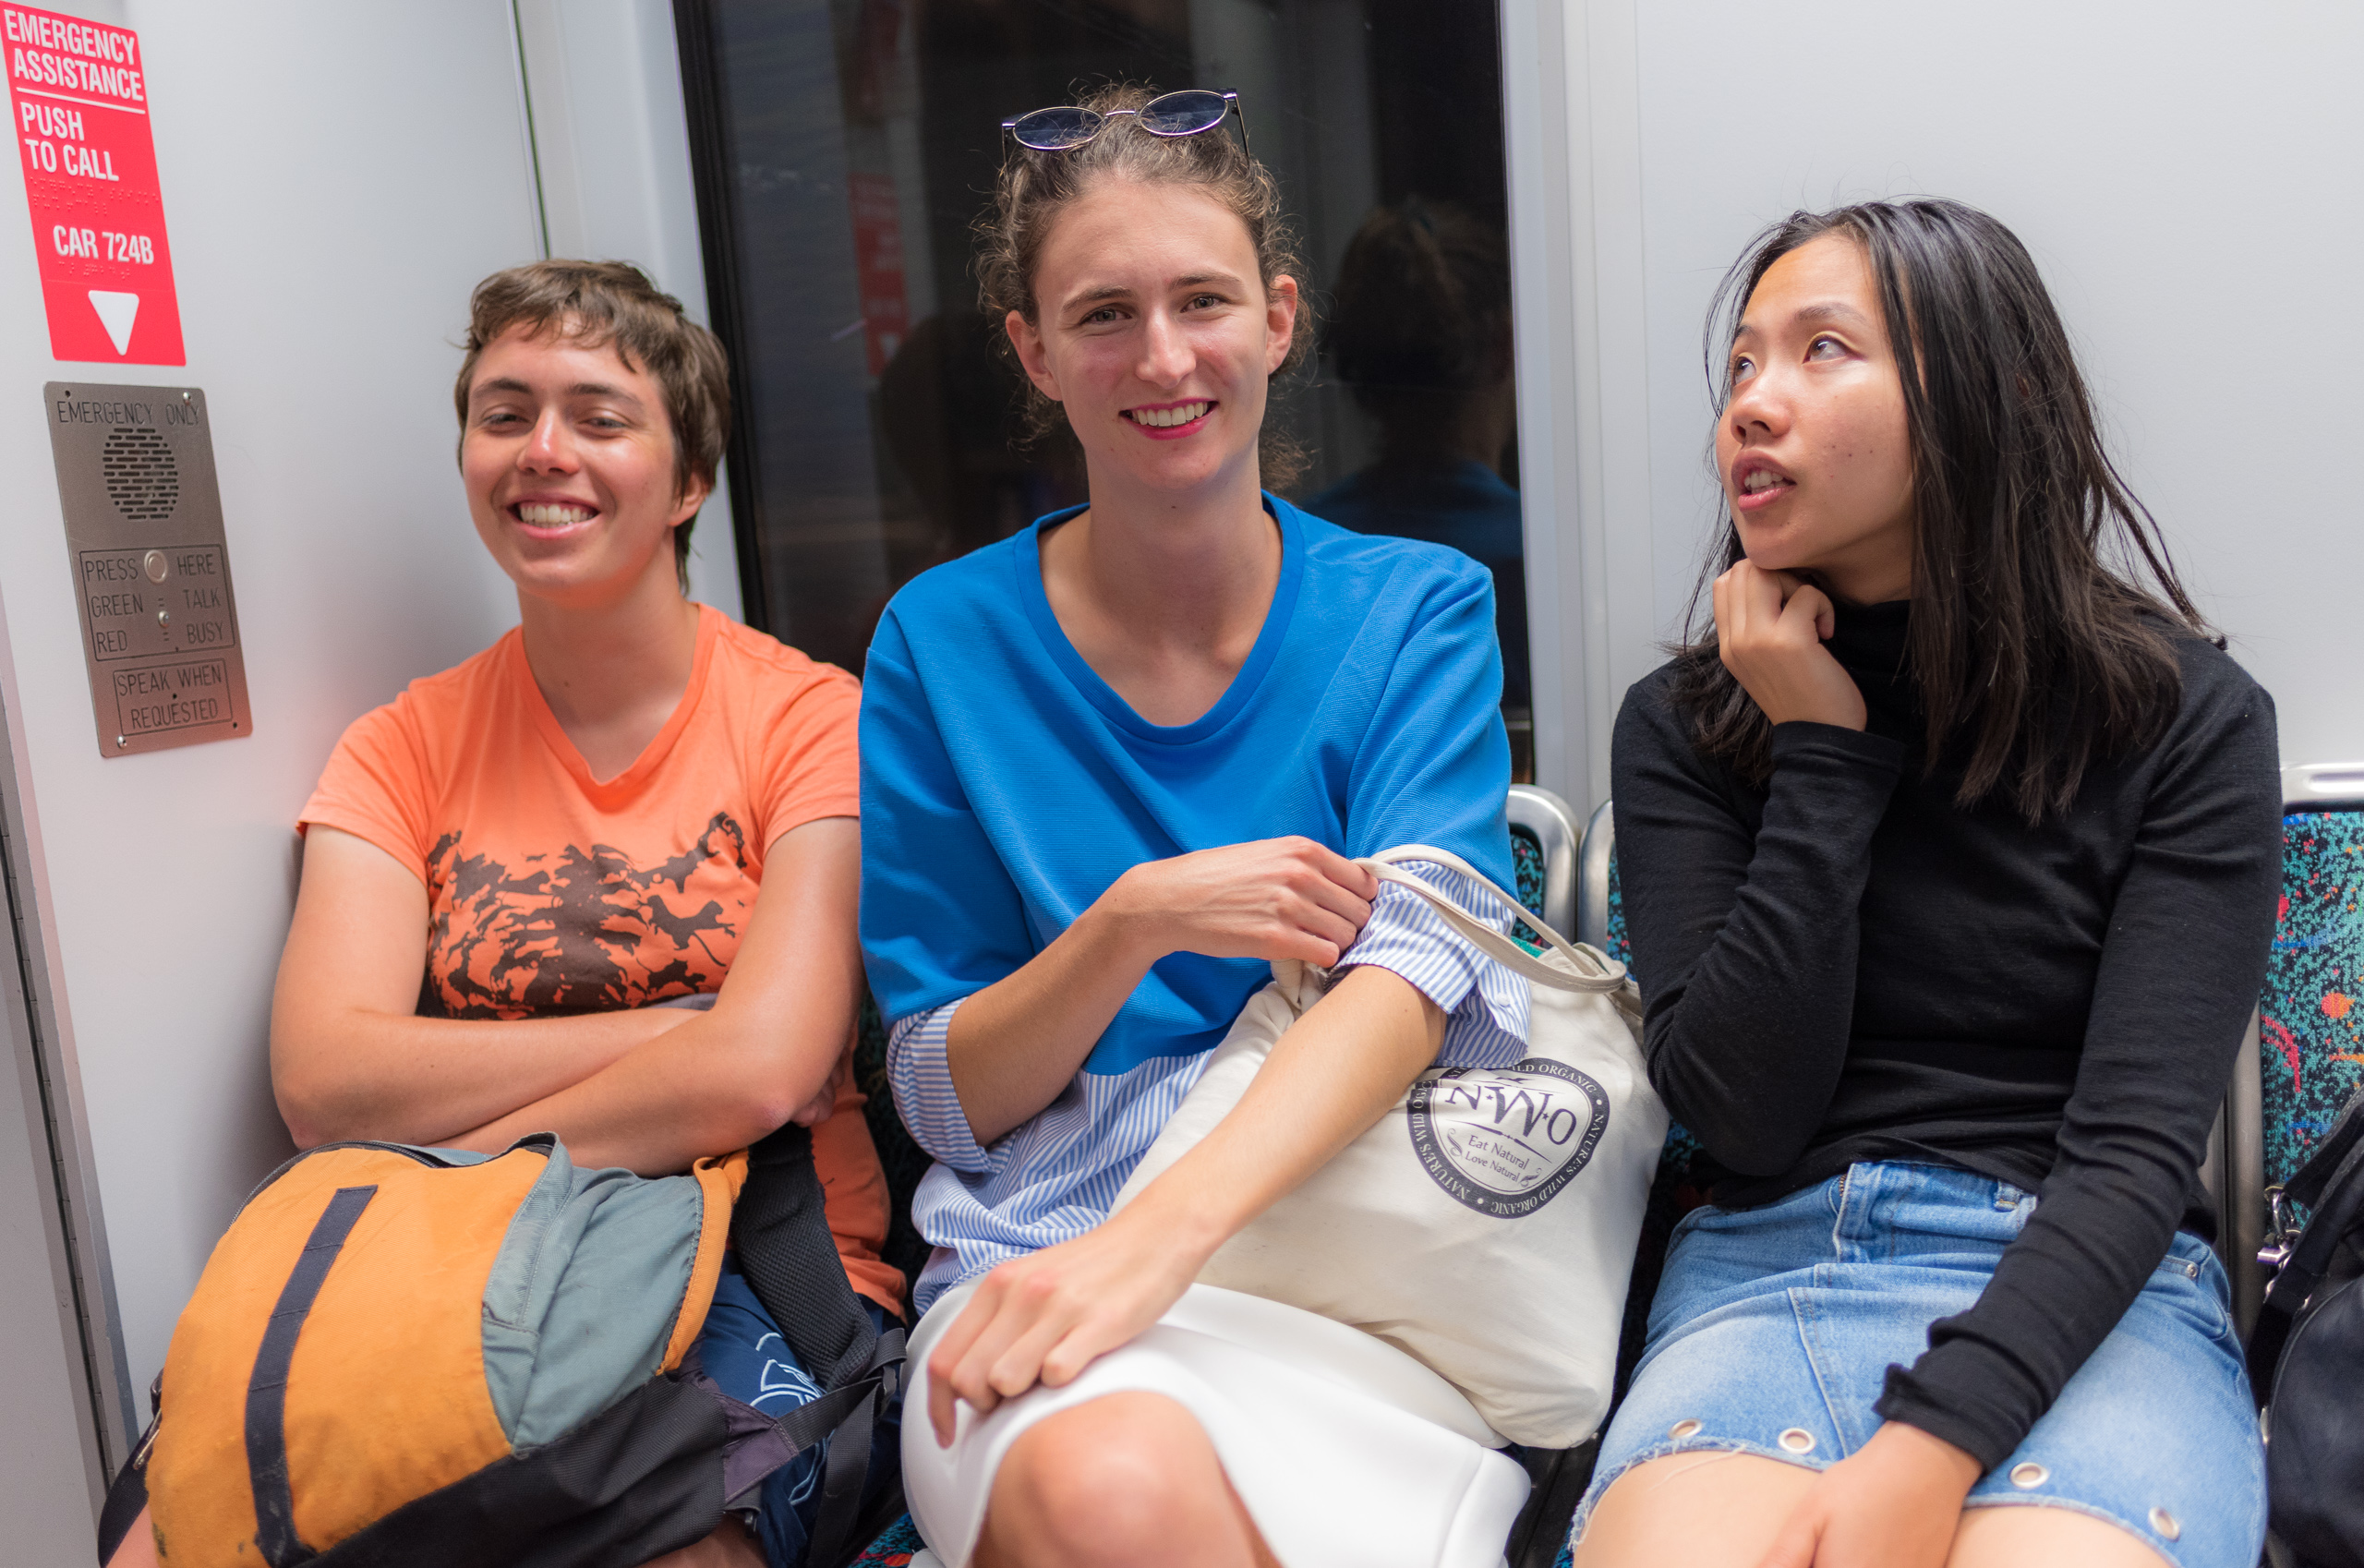 Tessa Forde and friends from New Zealand going home on the LA Metro Gold Line